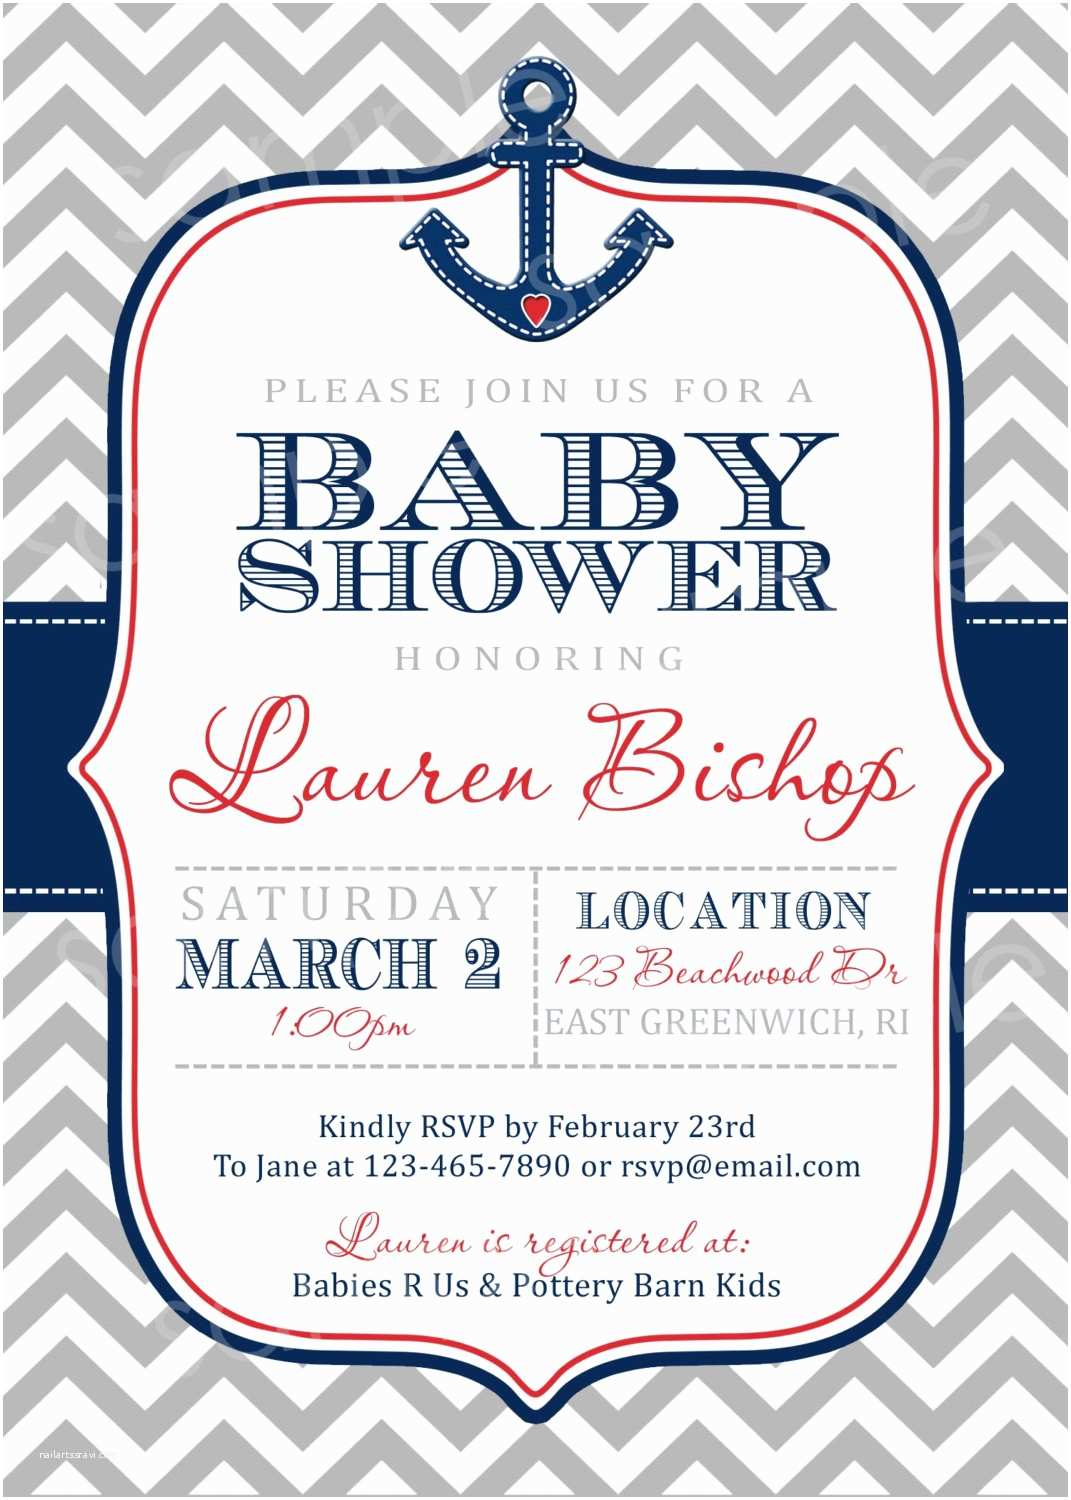 Nautical themed Baby Shower Invitations Unique Ideas for Nautical themed Baby Shower Invitations